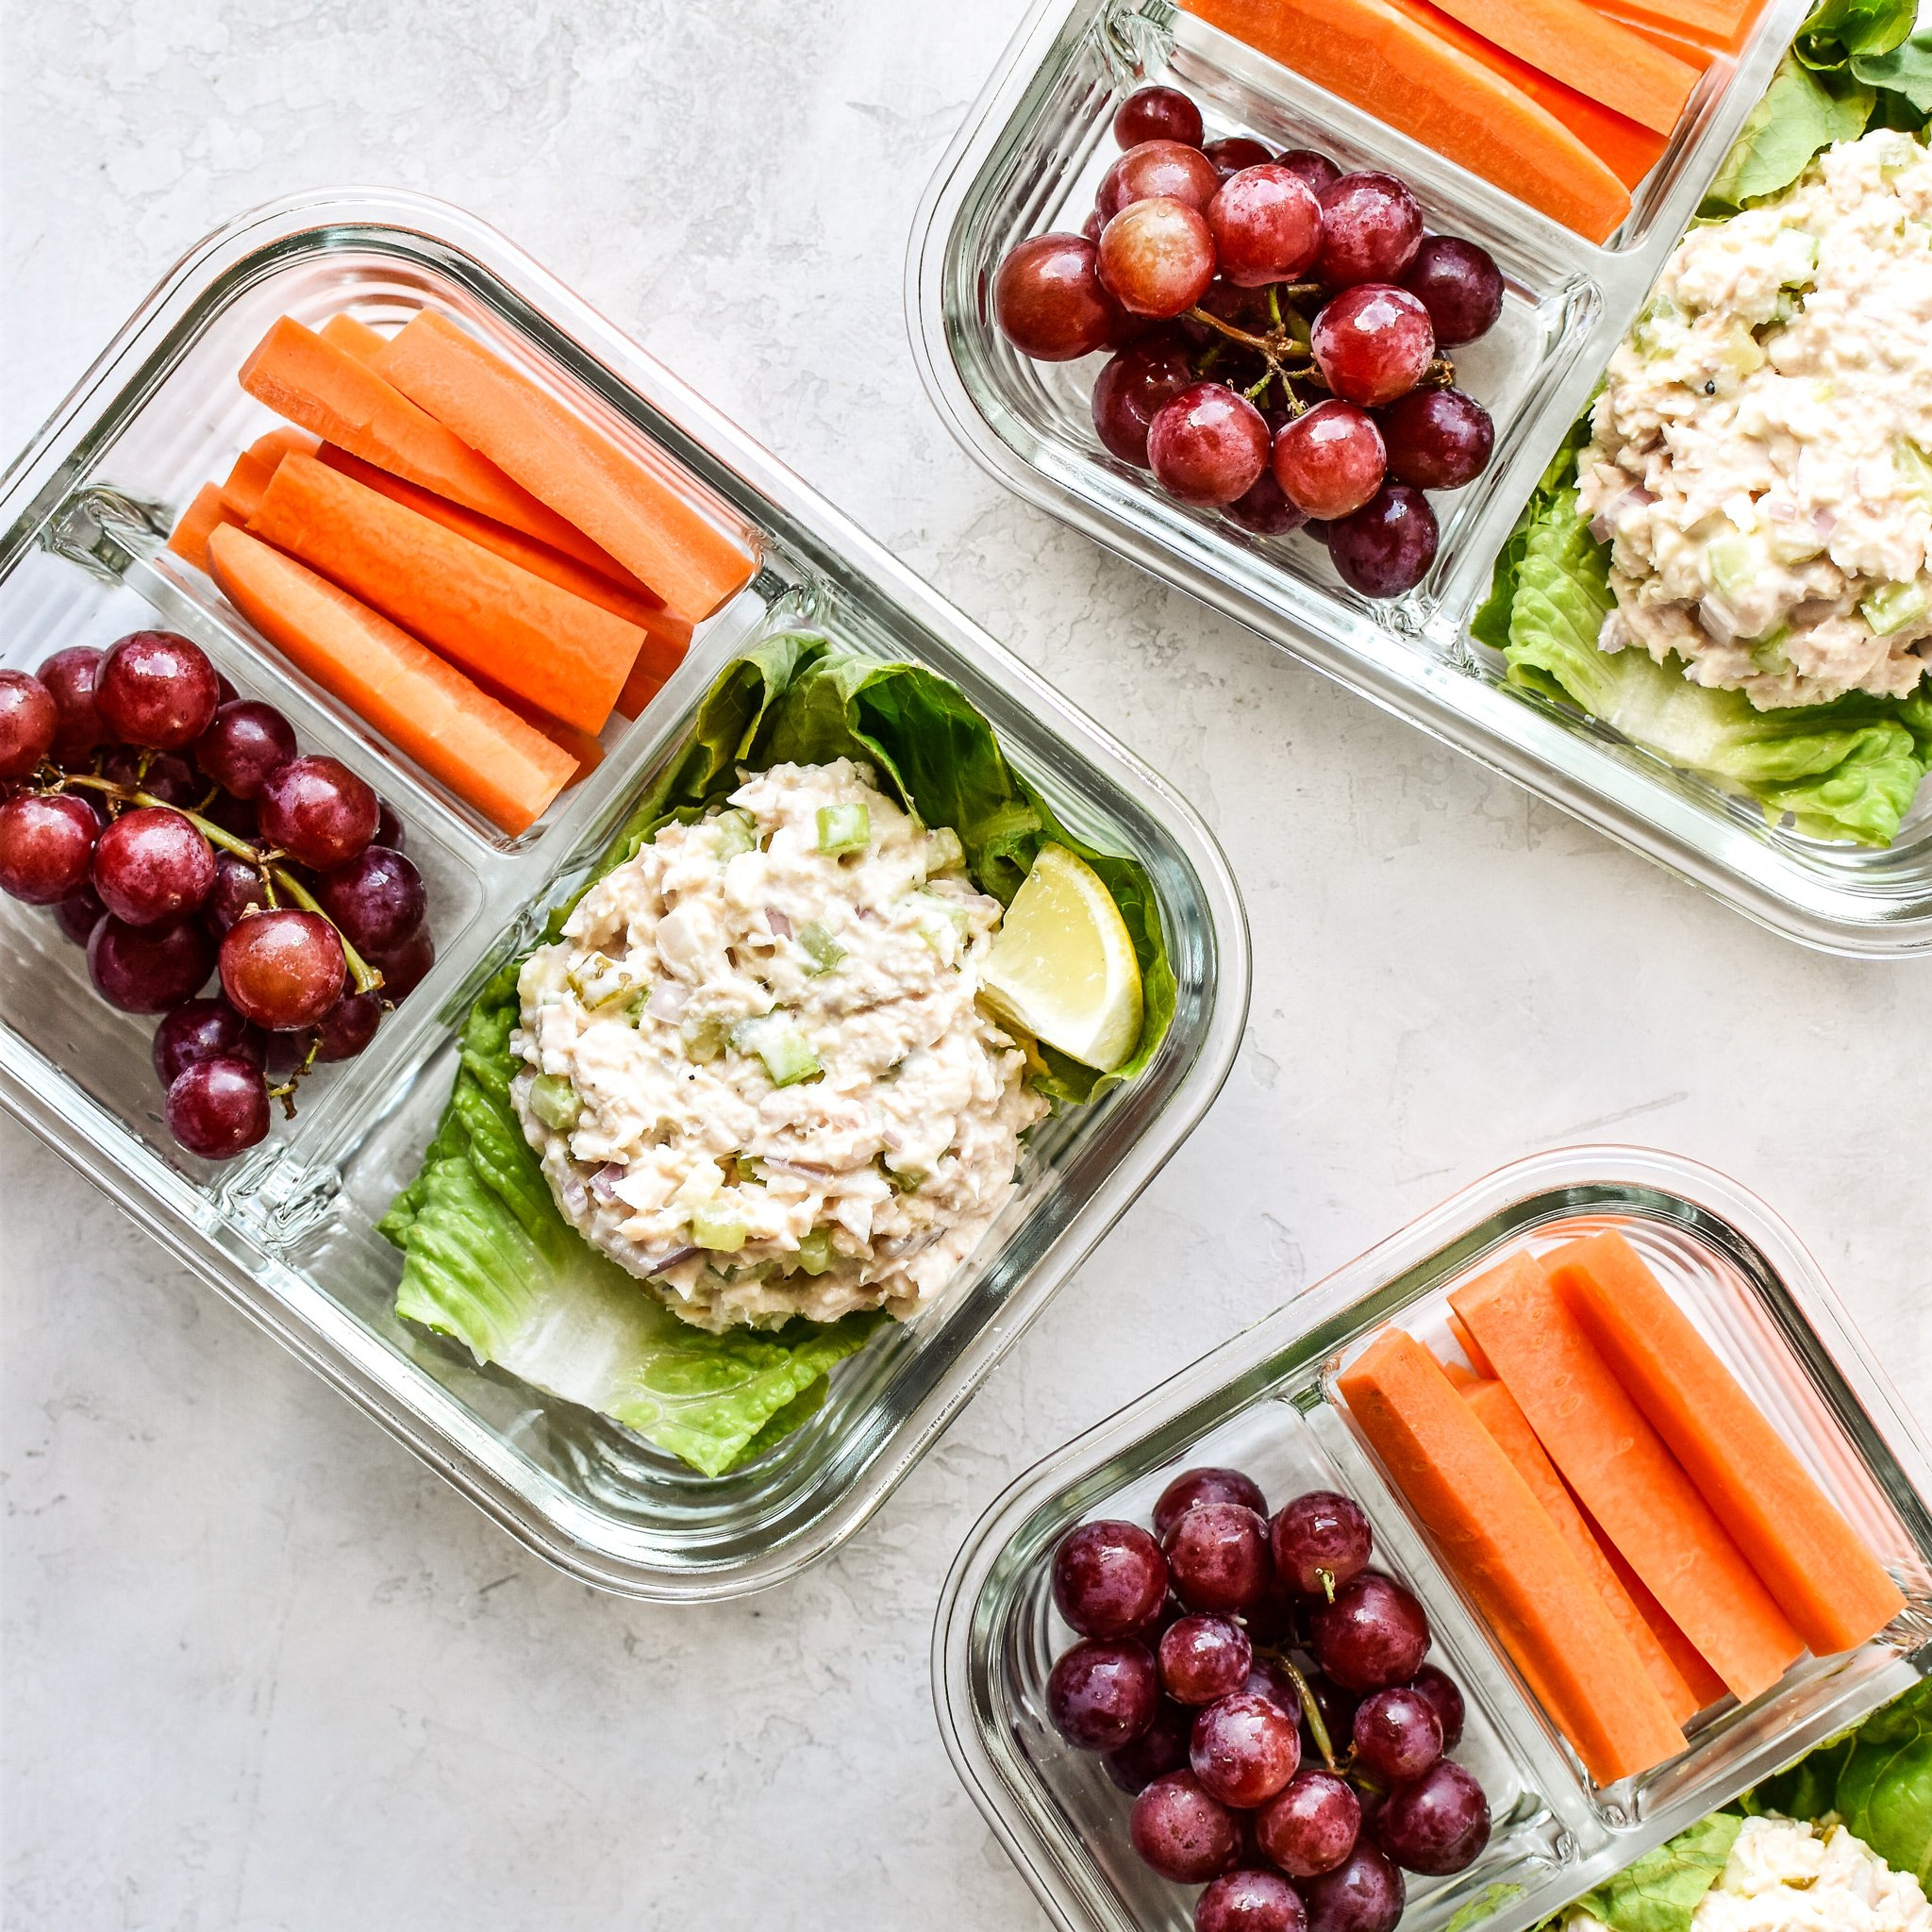 Low carb tuna salad lettuce wraps meal prep lunches with grapes and carrots.